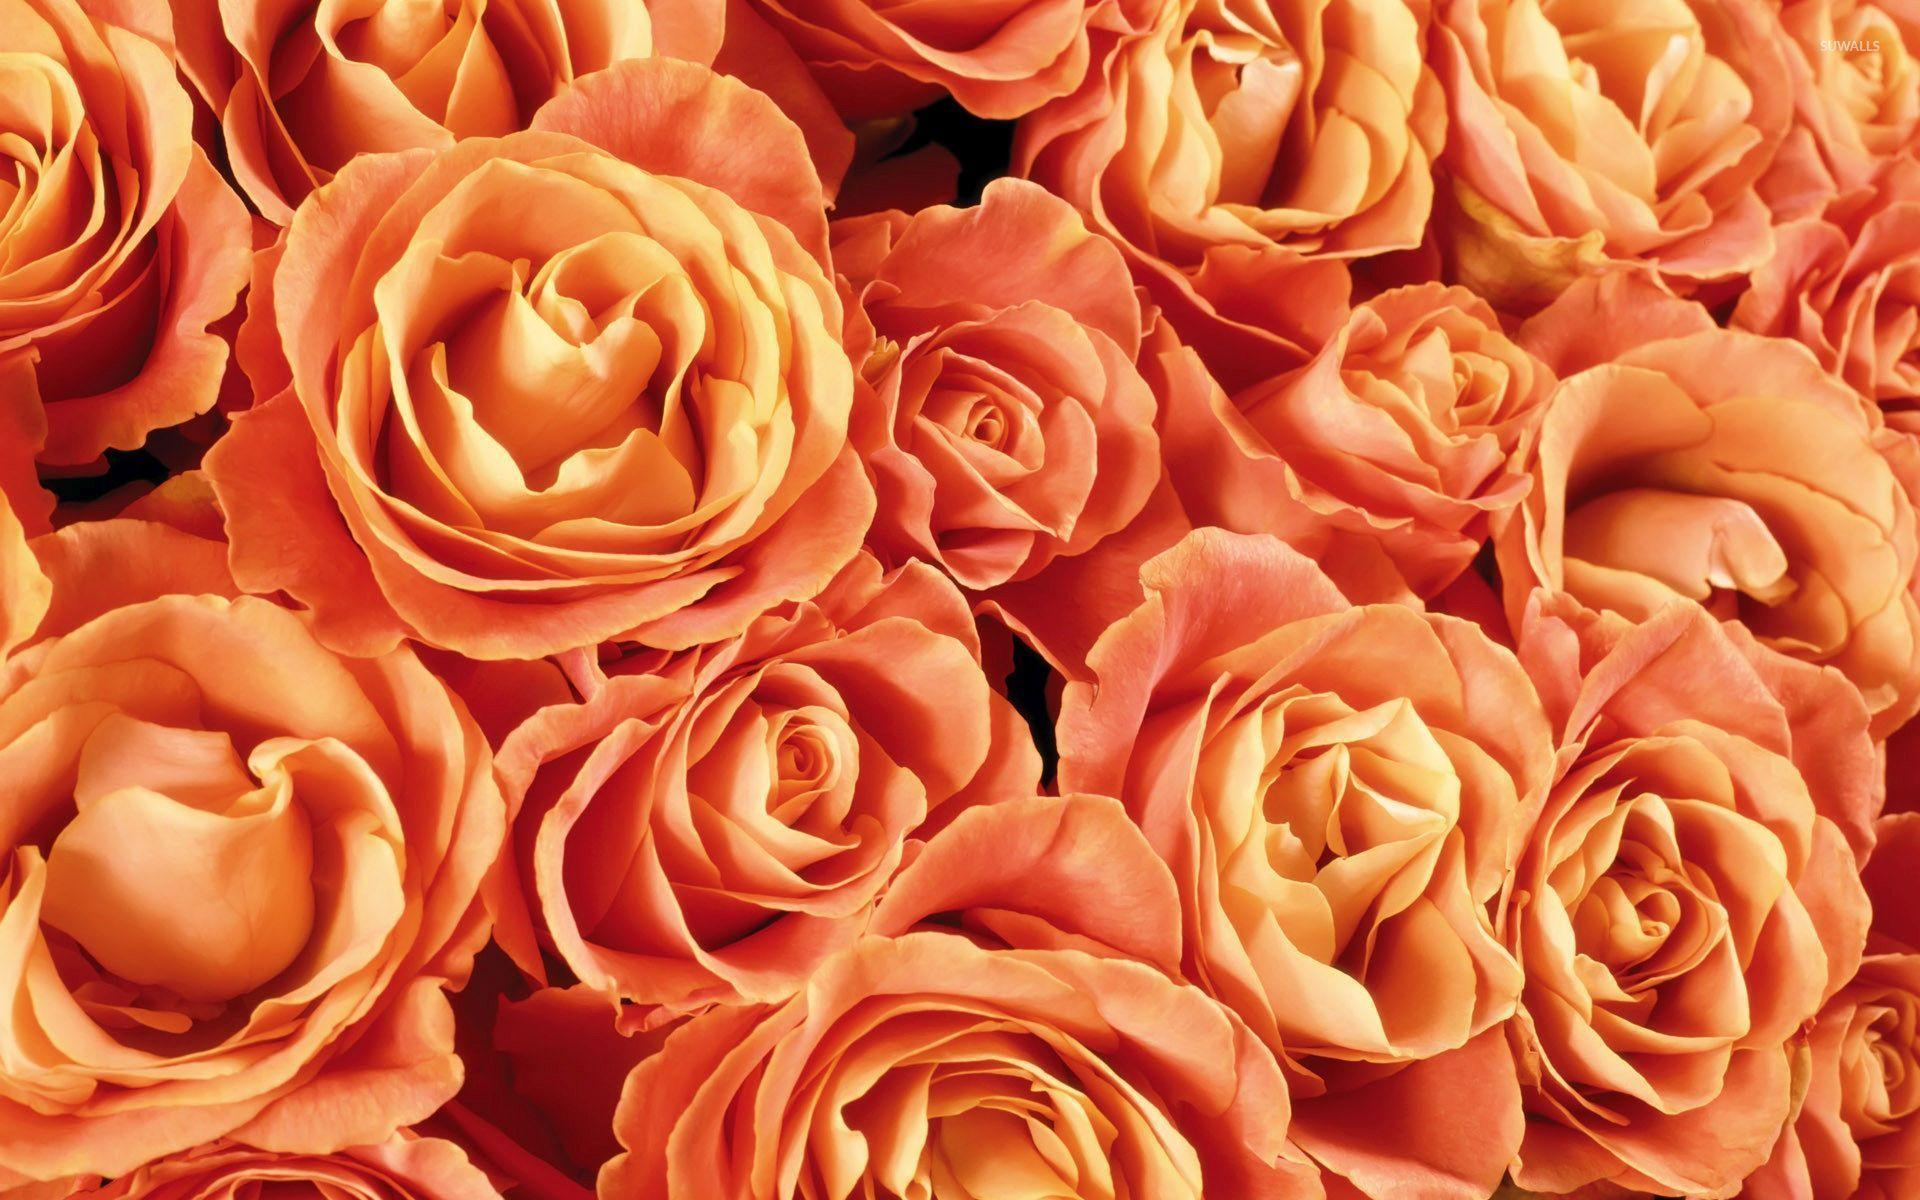 Orange Roses Wallpapers - Wallpaper Cave